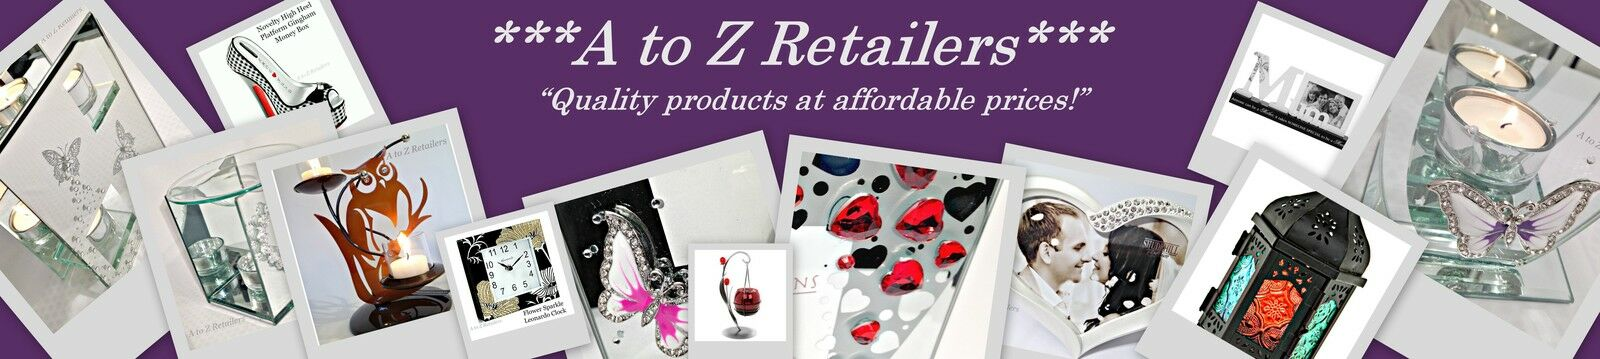 A_to_Z_Retailers